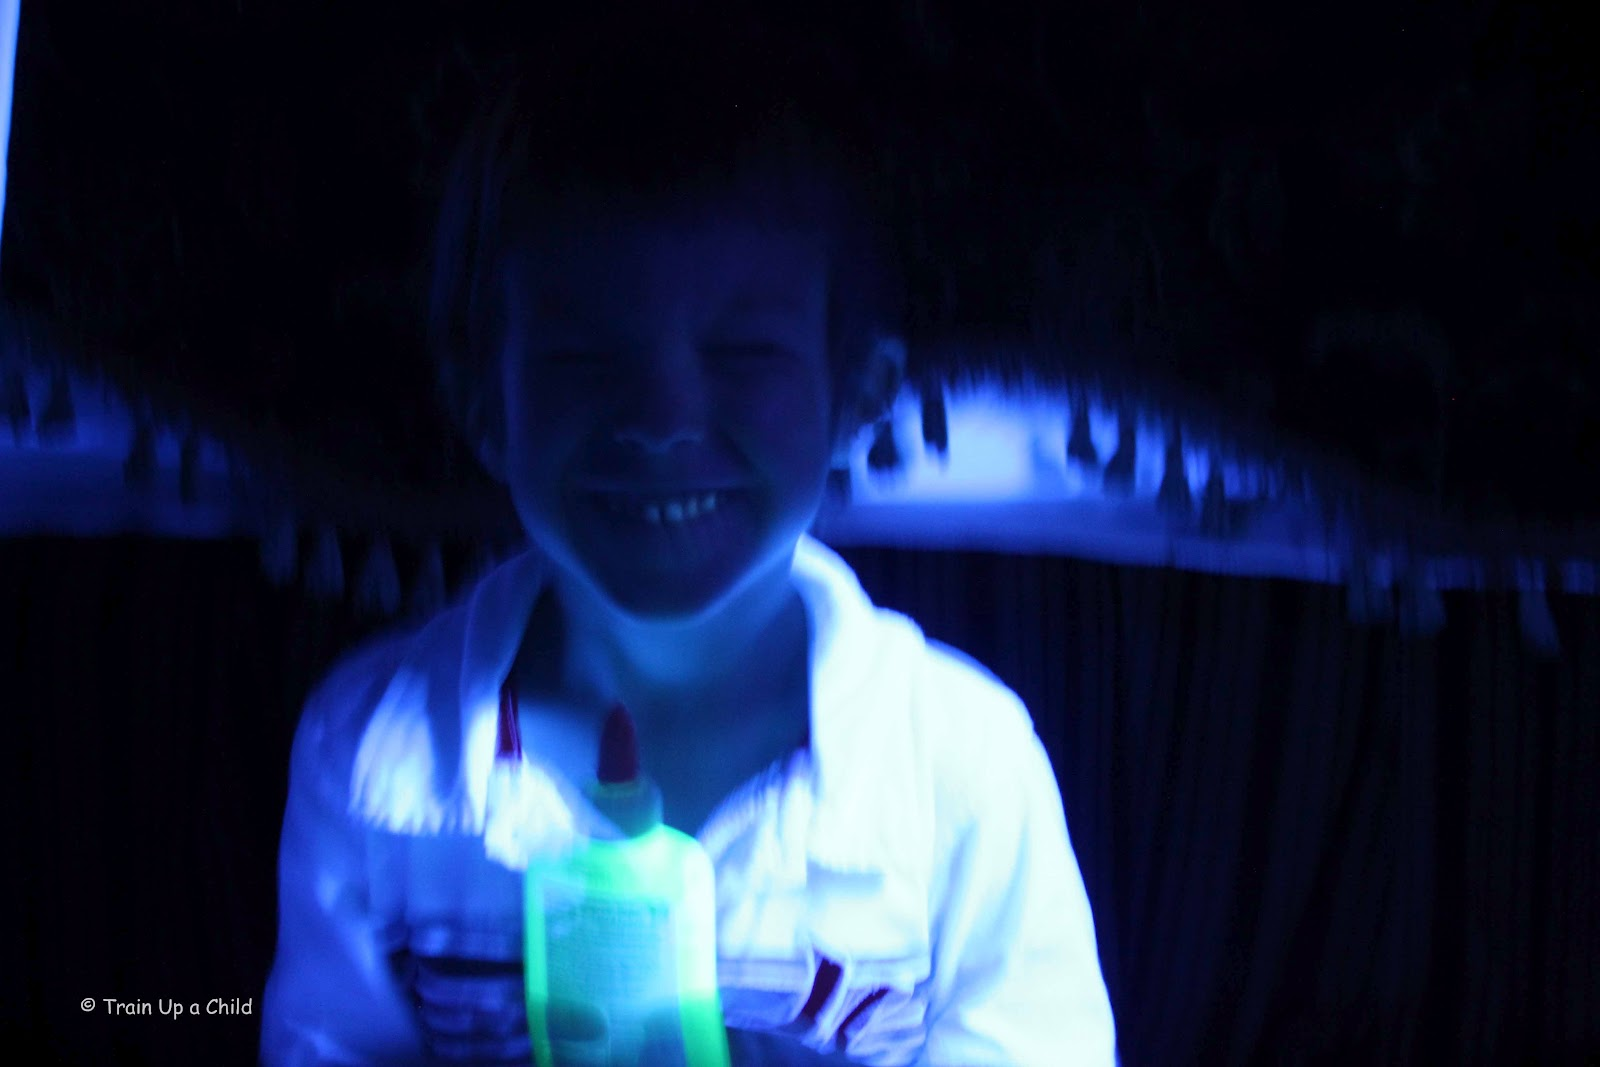 Home depot glow in the dark paint - Homemade Glowing Paint